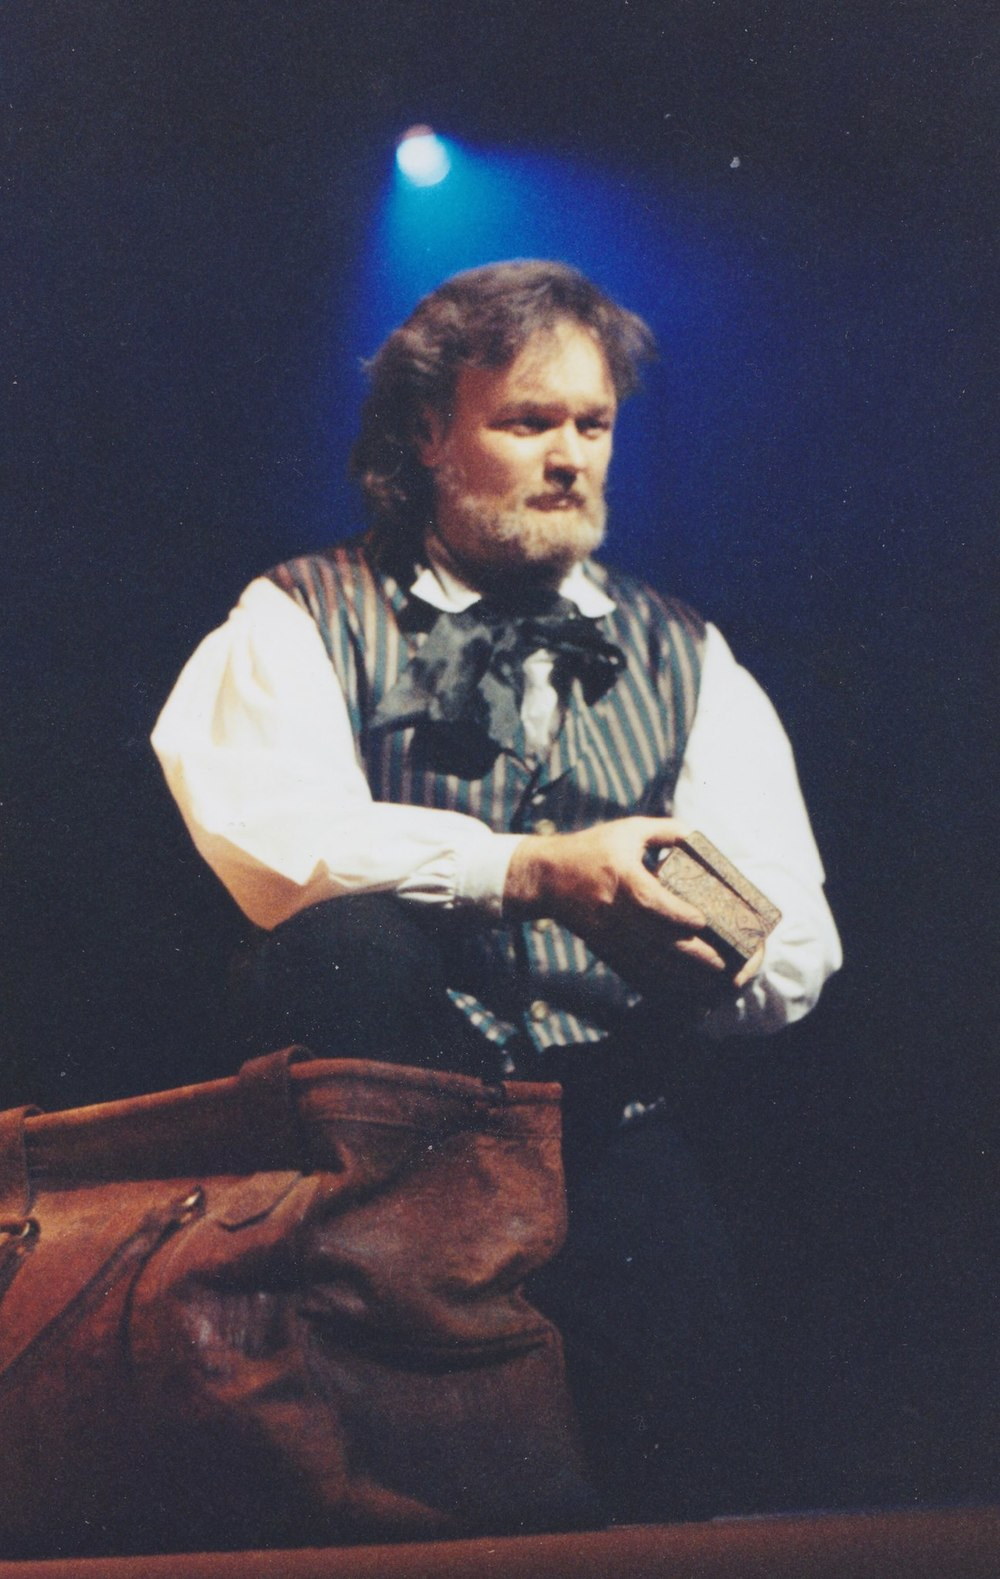 Leigh McRae performing in the the musical Les Misérables, circa 1994.